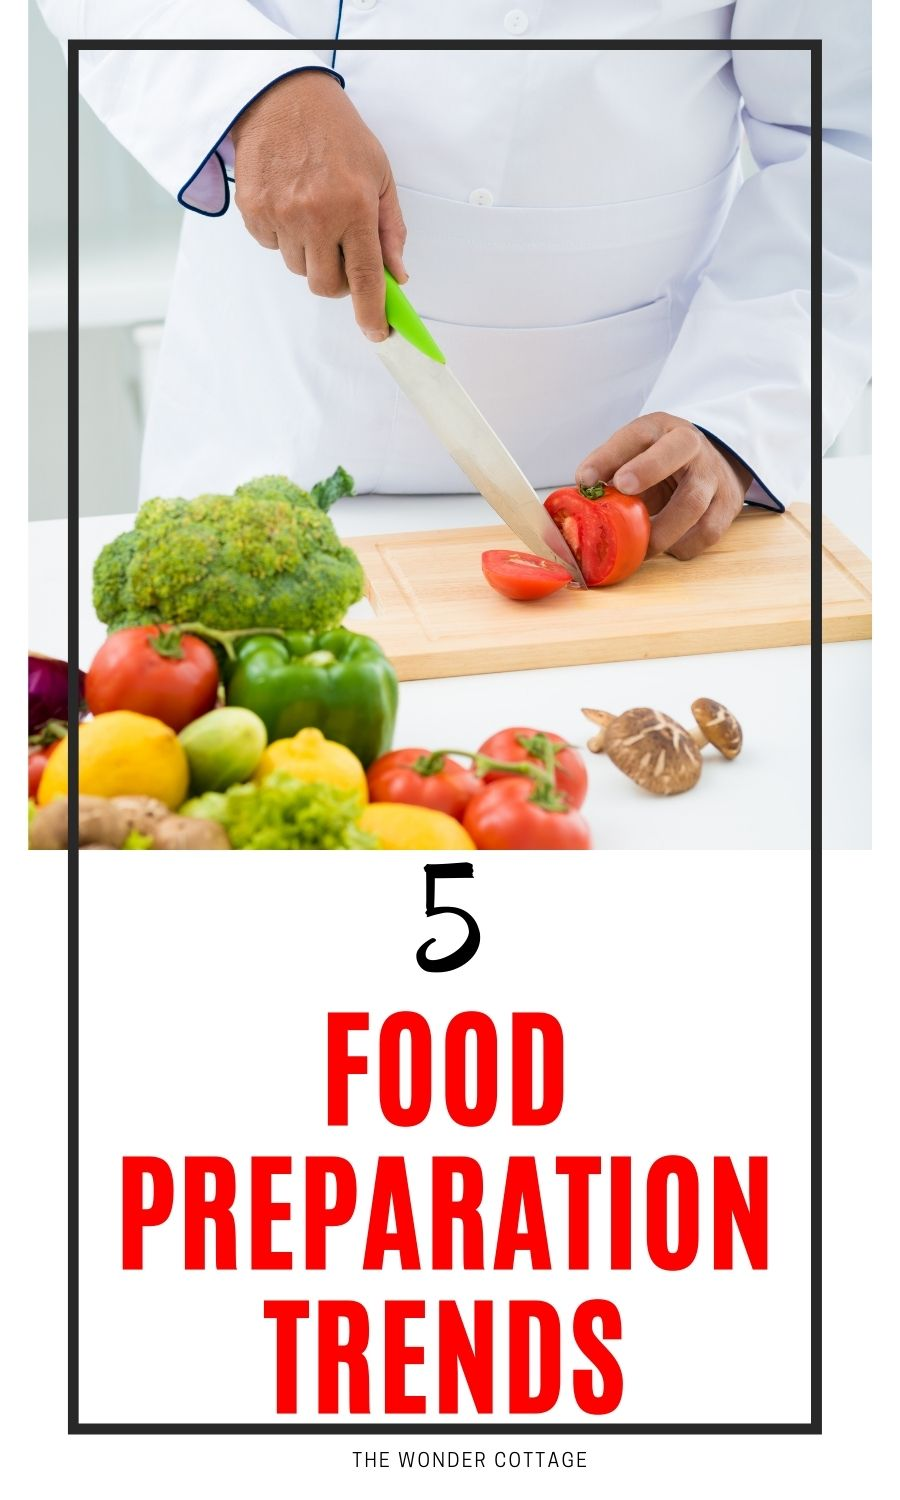 5 Food Preparation Trends That Are Catching On Fast